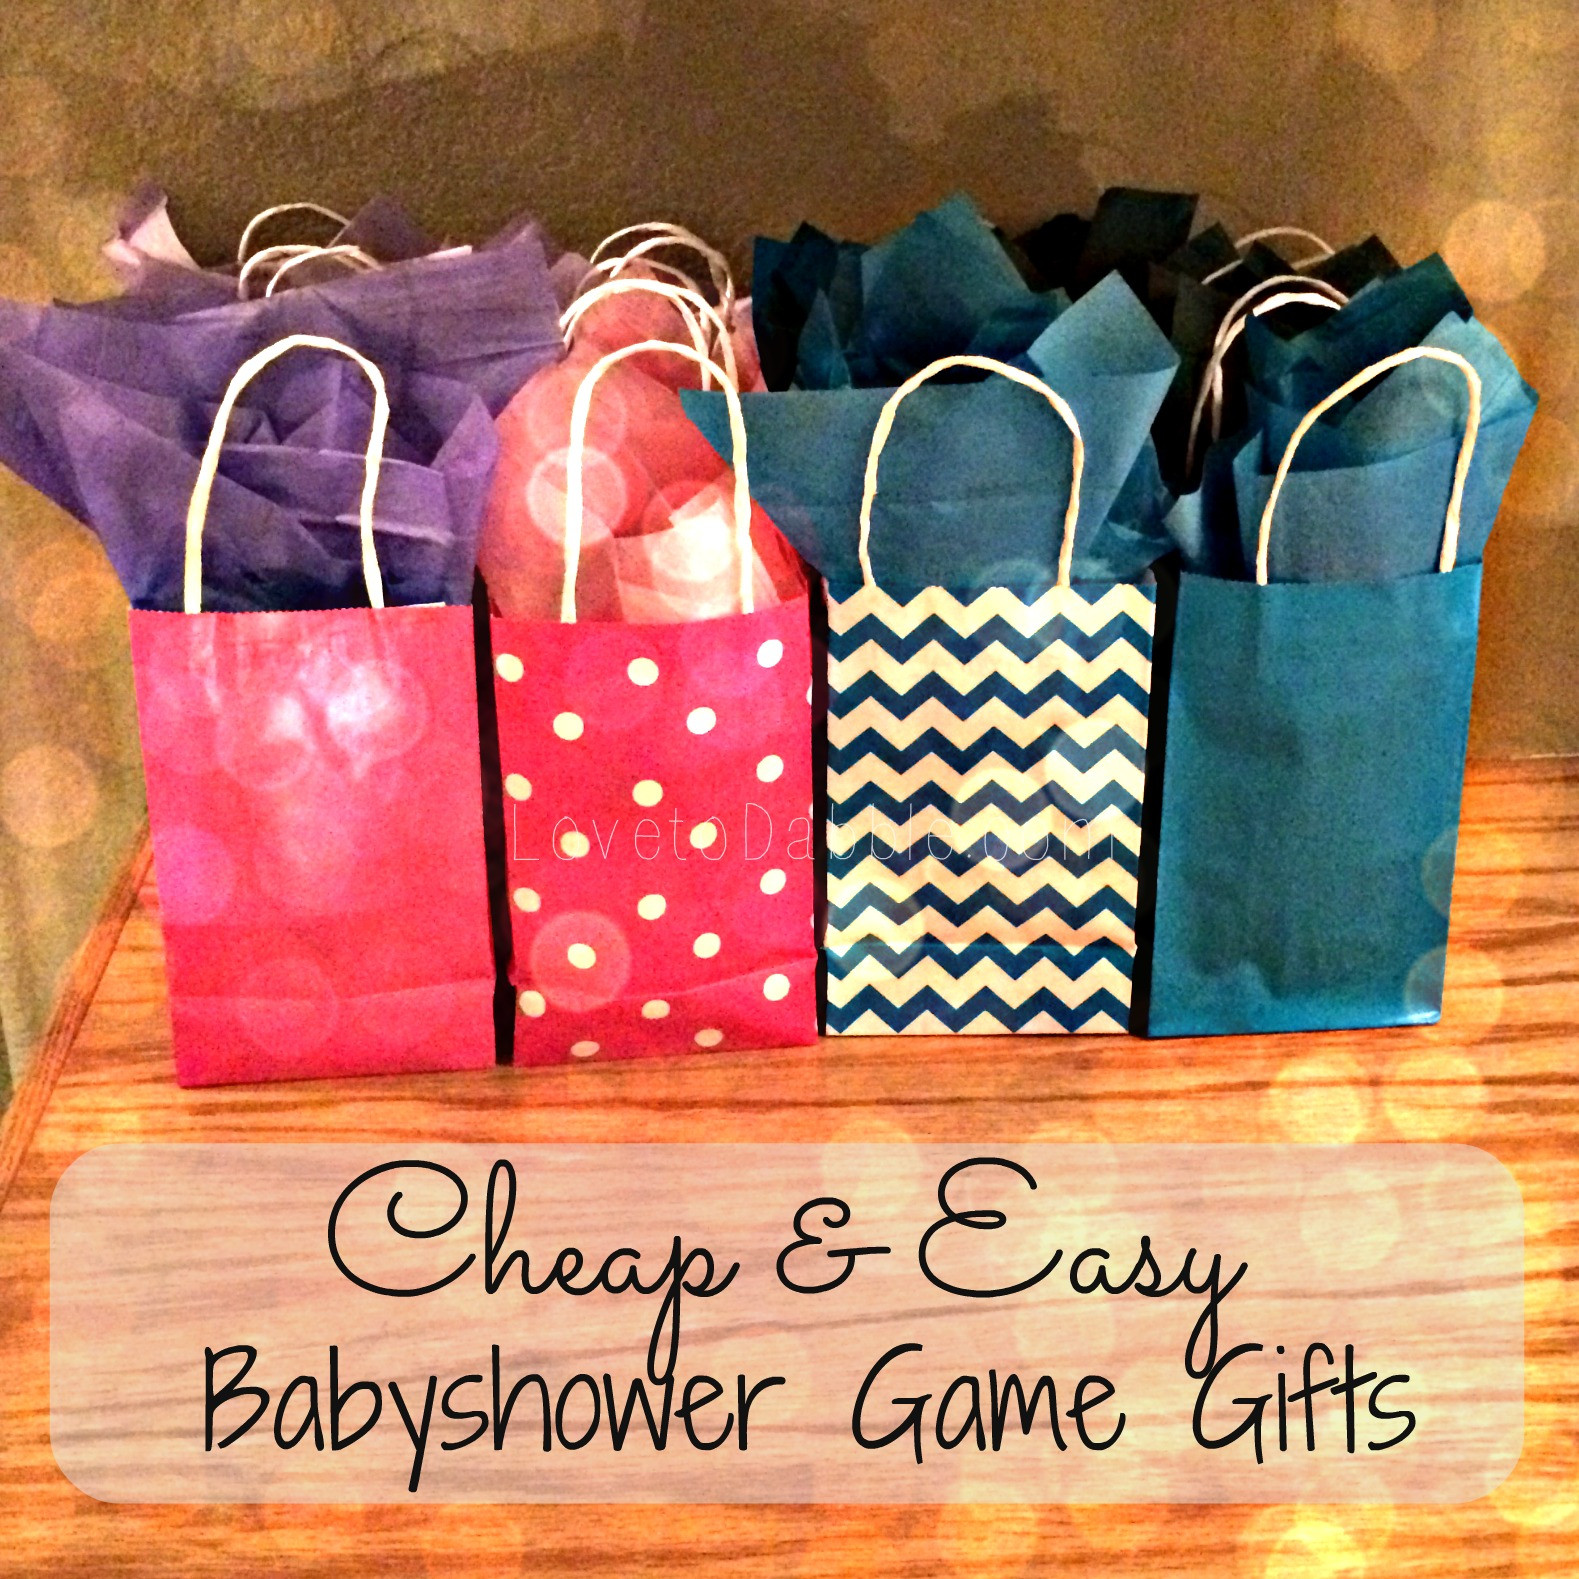 Baby Shower Games Gift Ideas  List Baby Shower Image